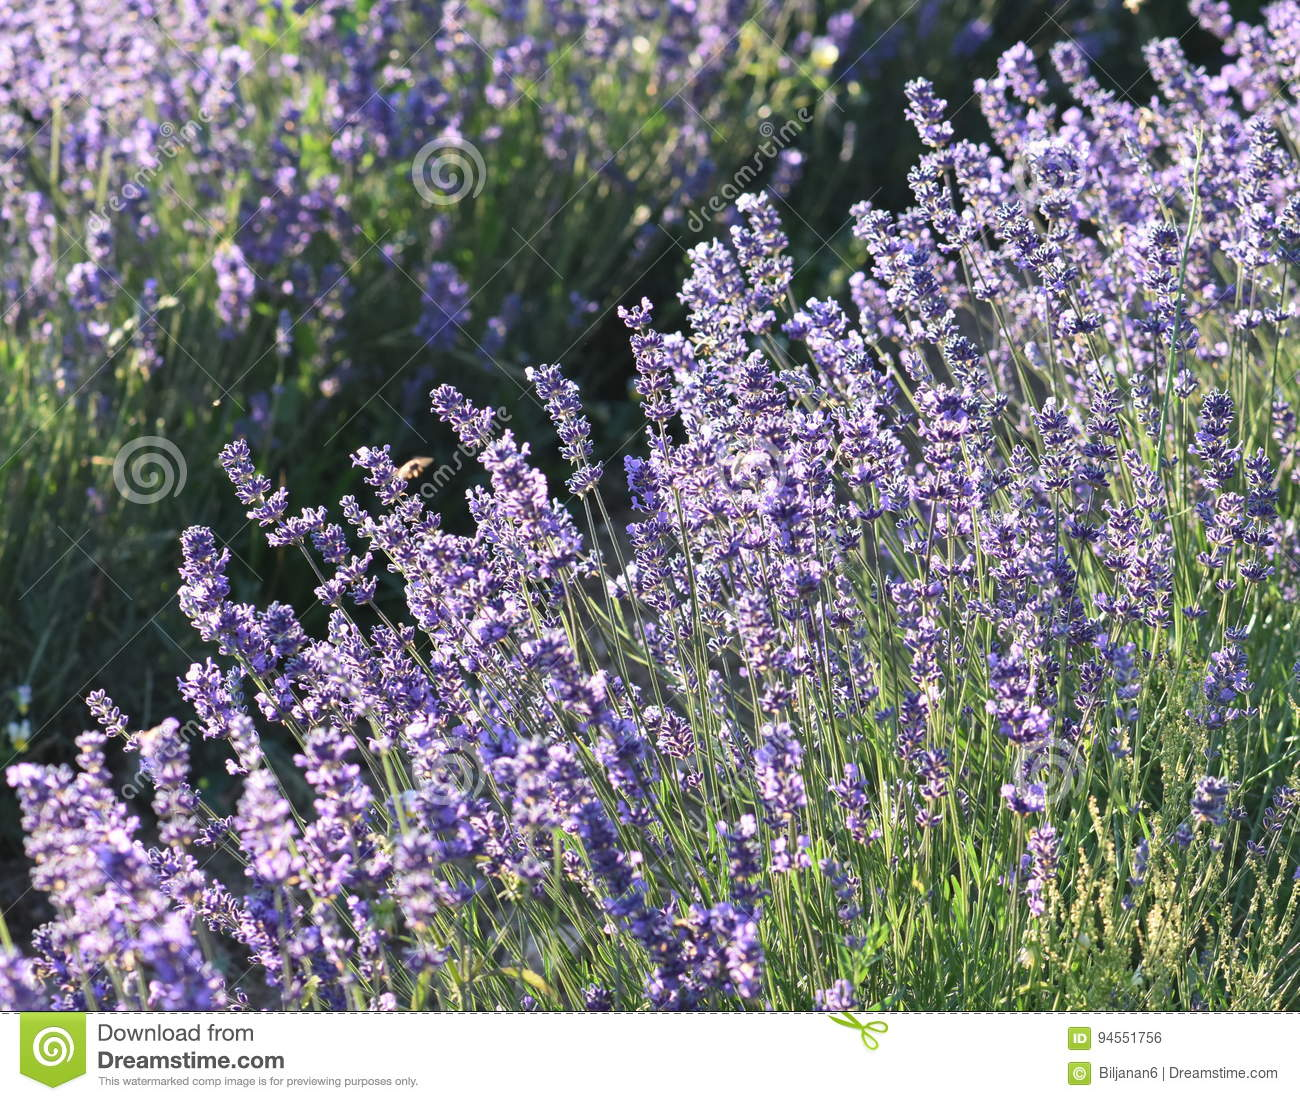 Beautiful lavender flowers in nature stock photo image of fresh download beautiful lavender flowers in nature stock photo image of fresh flowers 94551756 izmirmasajfo